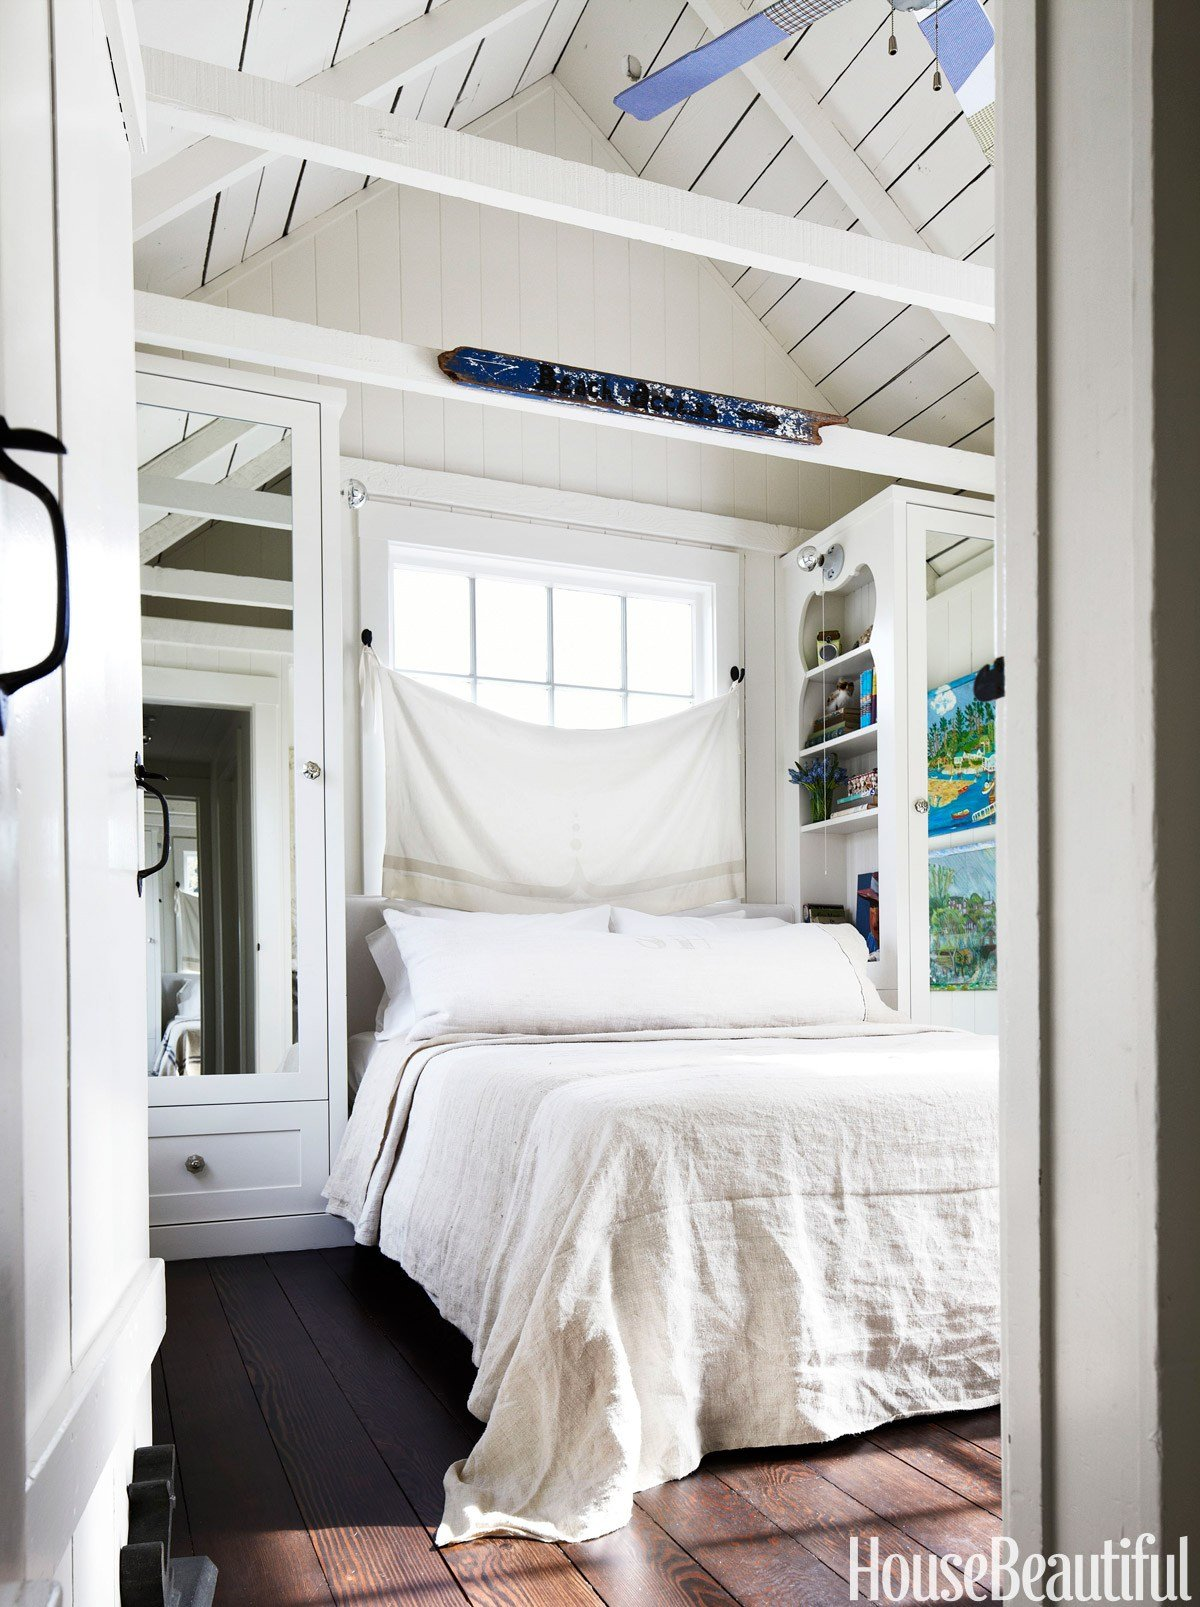 Best 10 Small Bedroom Decorating Ideas Design Tips For Tiny With Pictures